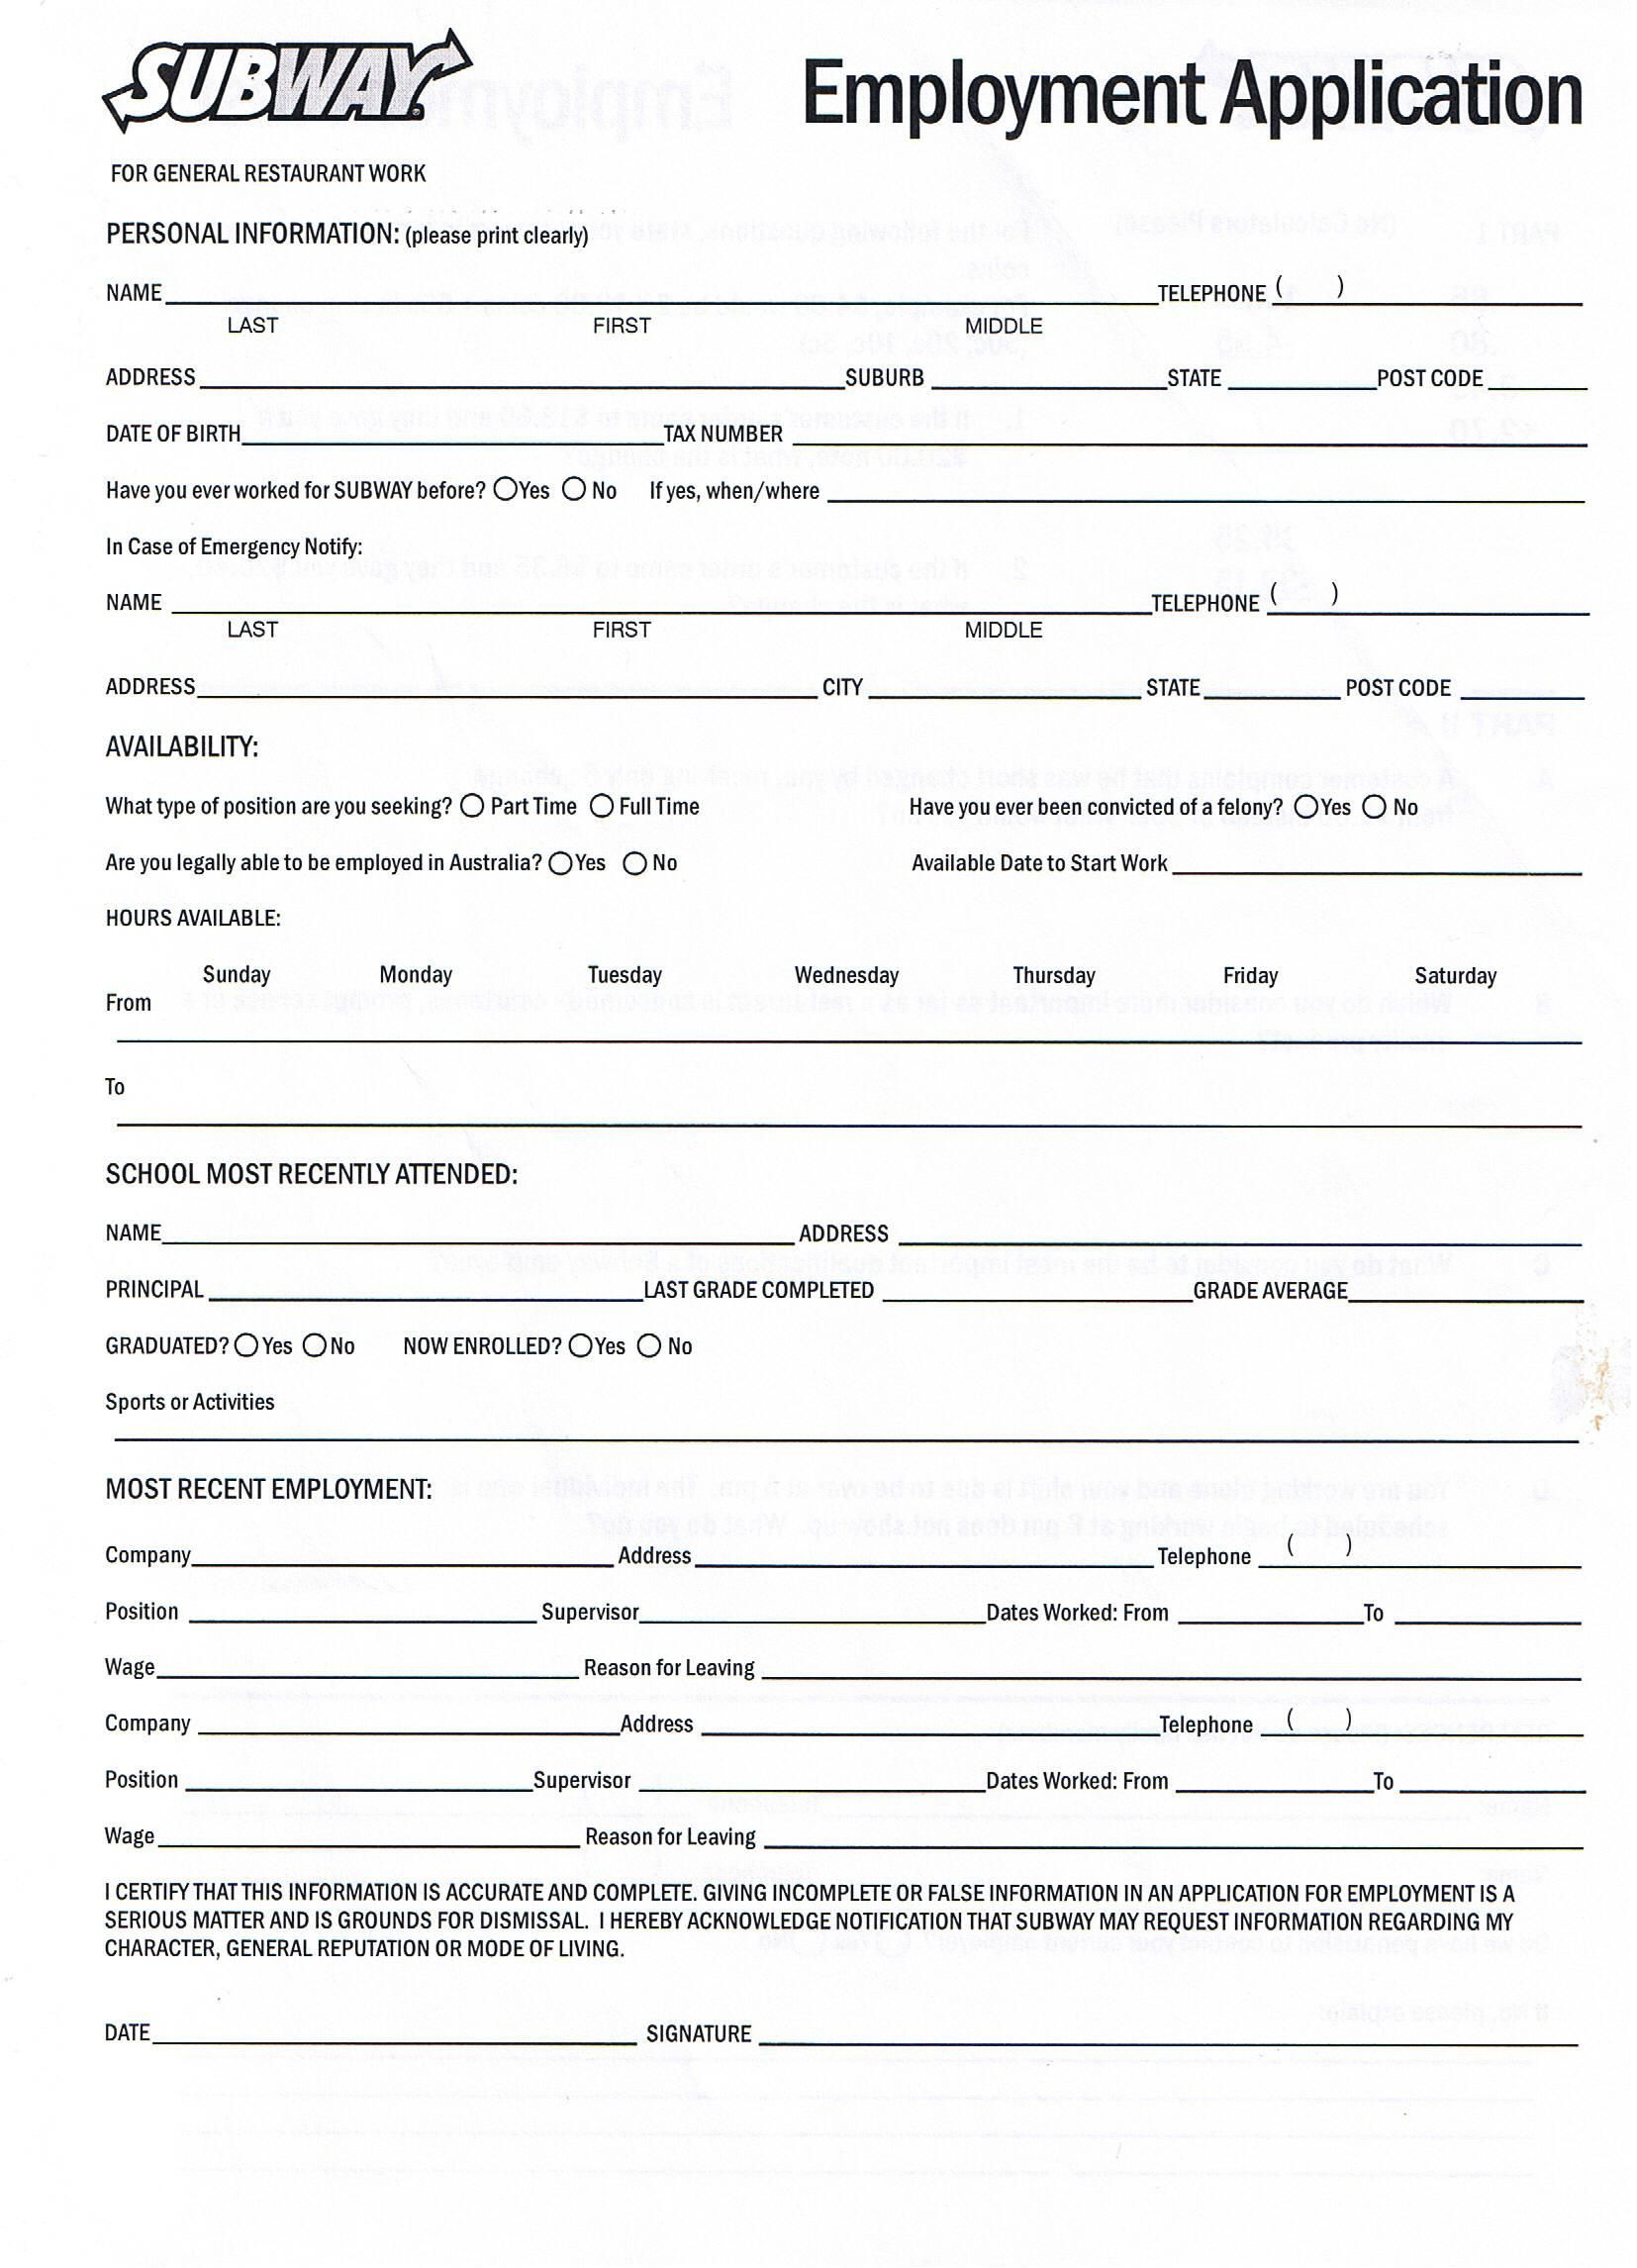 printable employment application for subway